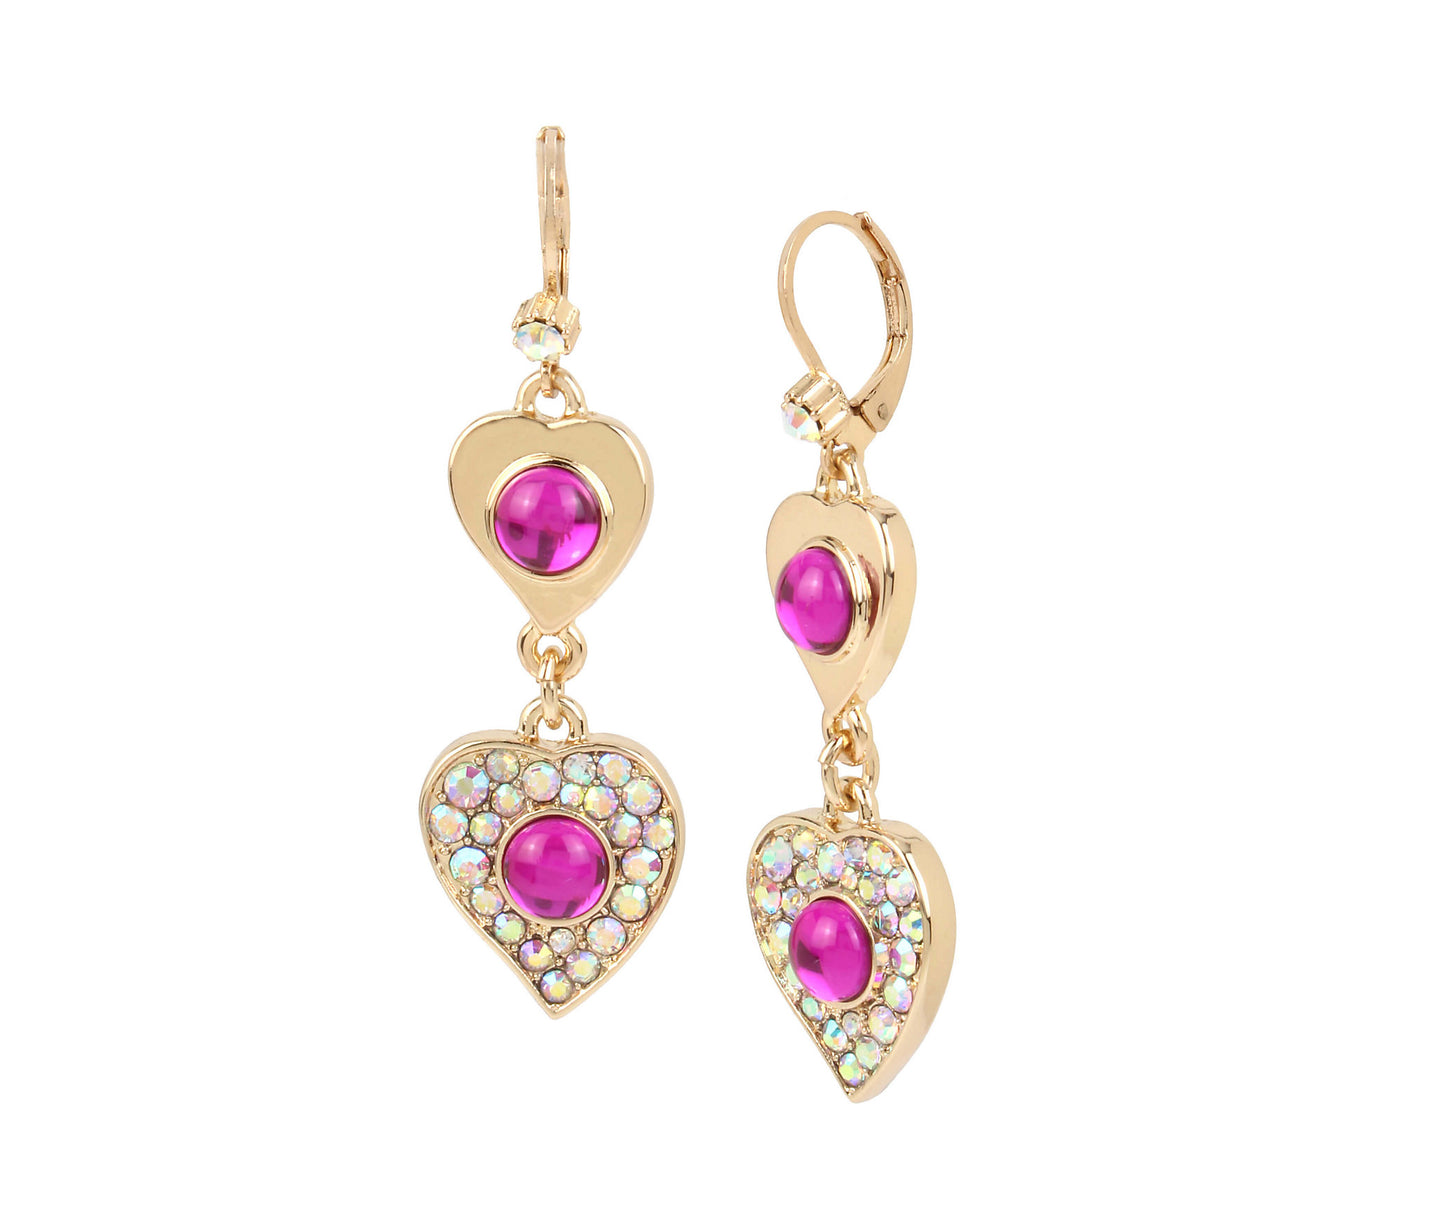 BREAKING HEARTS DOUBLE DROP EARRINGS PINK - JEWELRY - Betsey Johnson